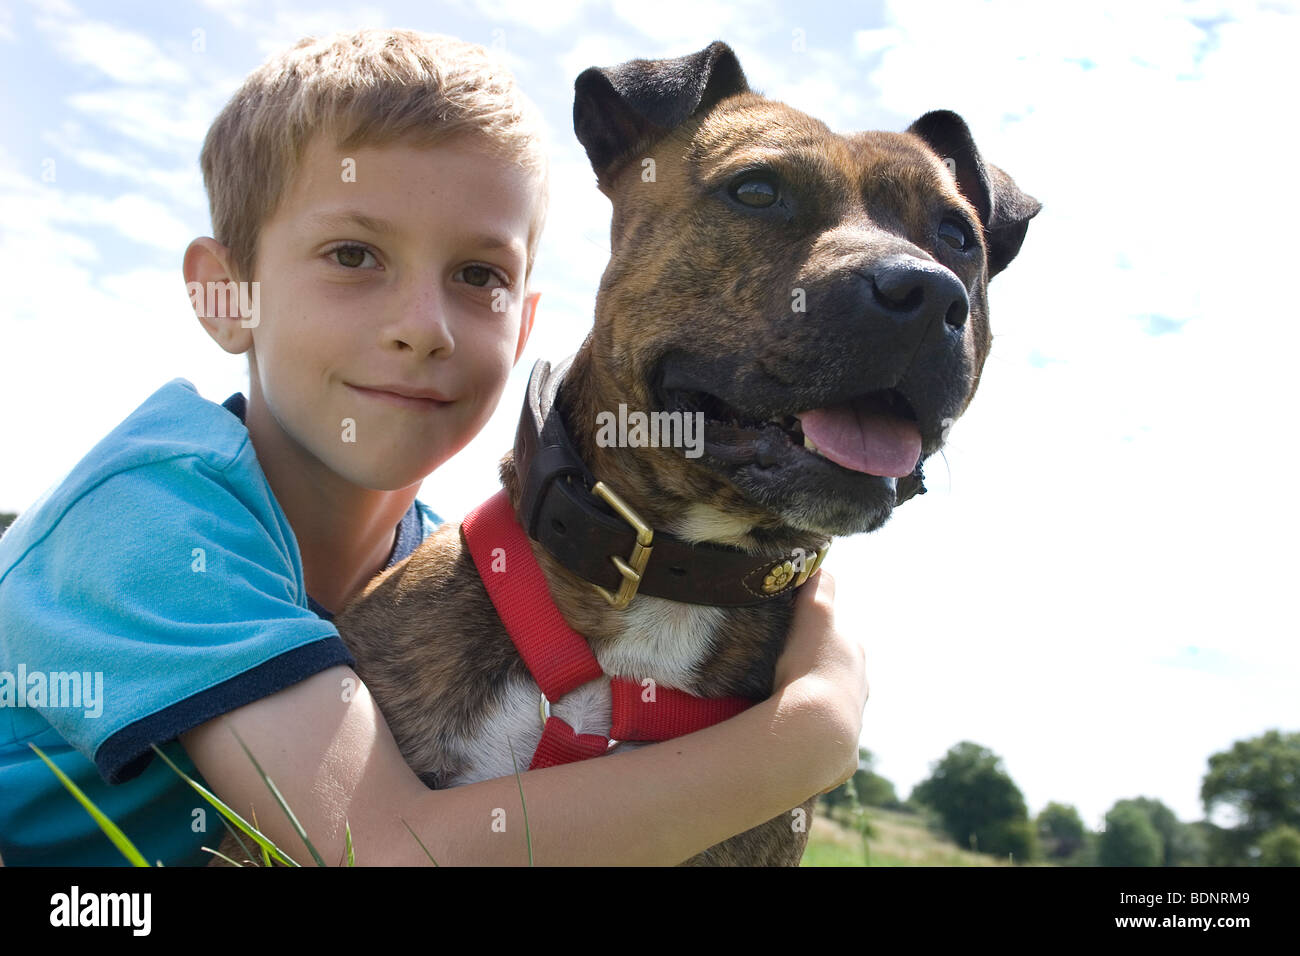 young boy outdoors with his staffordshire bull terrier - Stock Image